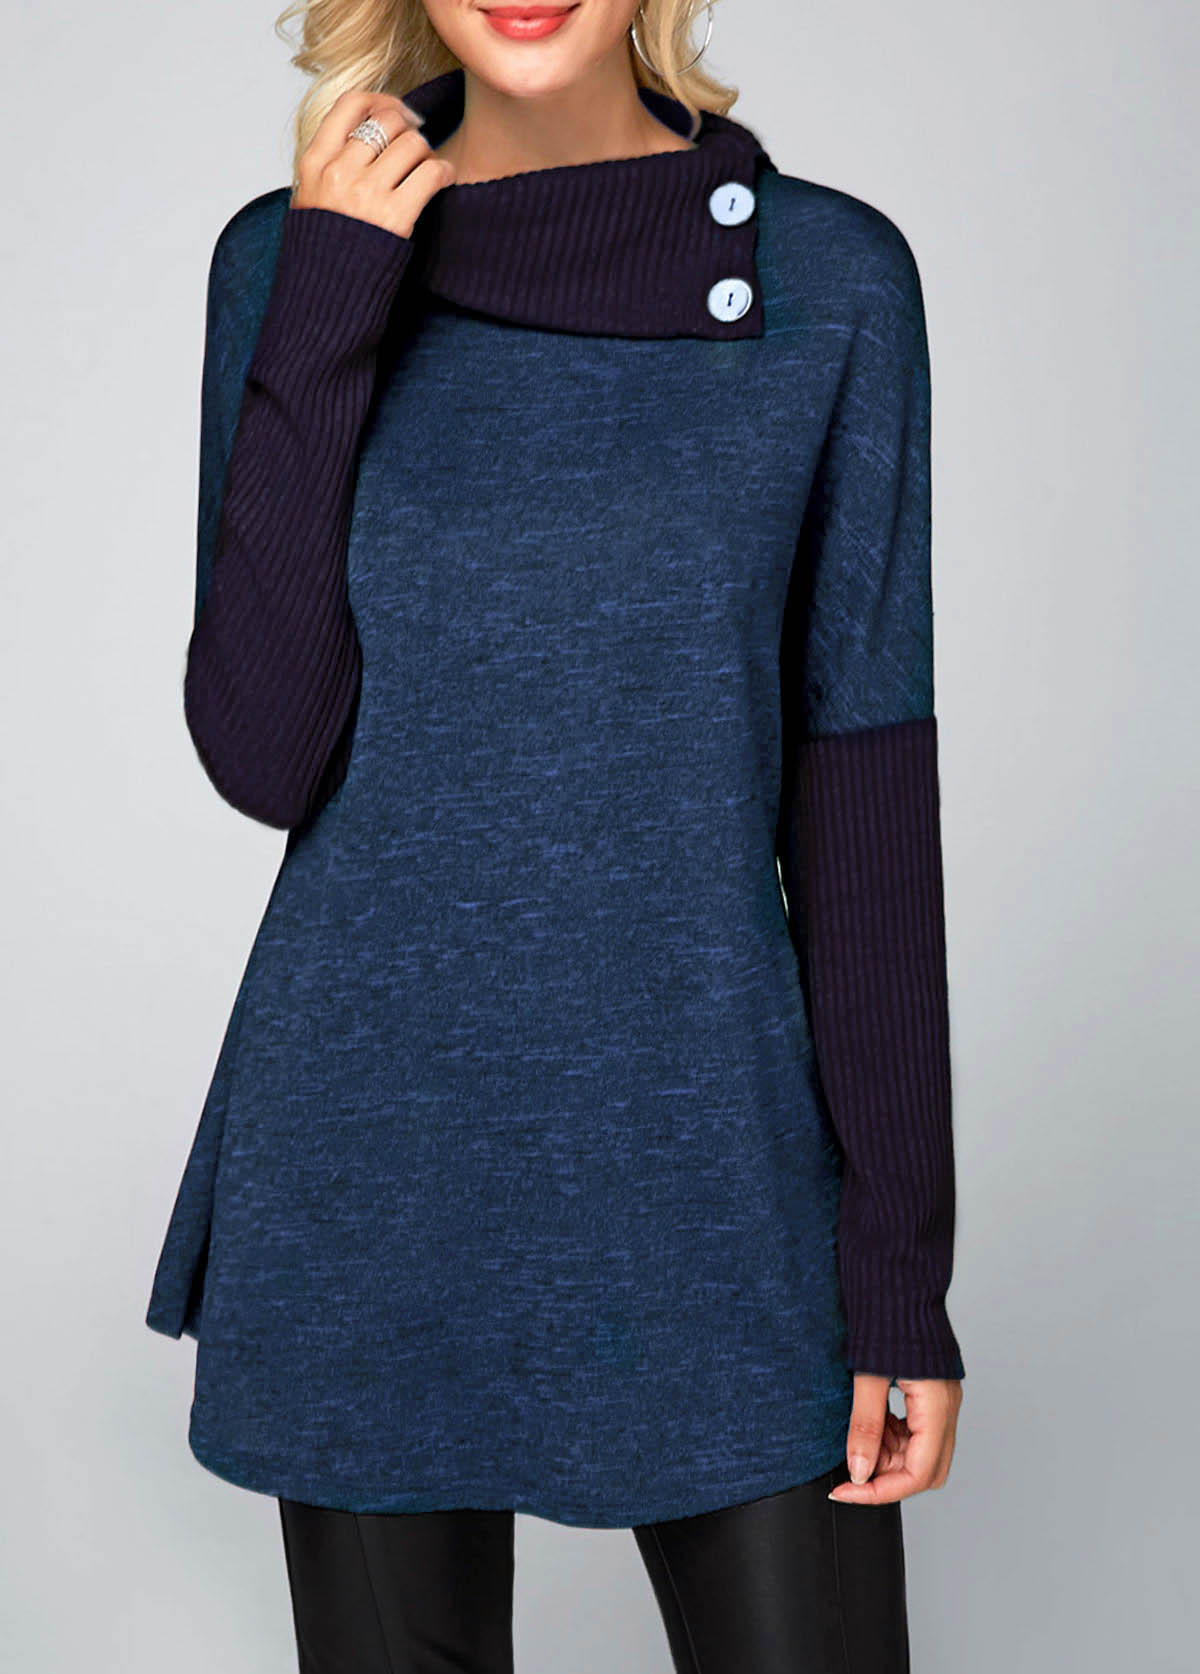 ROTITA Long Sleeve Button Detail Royal Blue Tunic Top